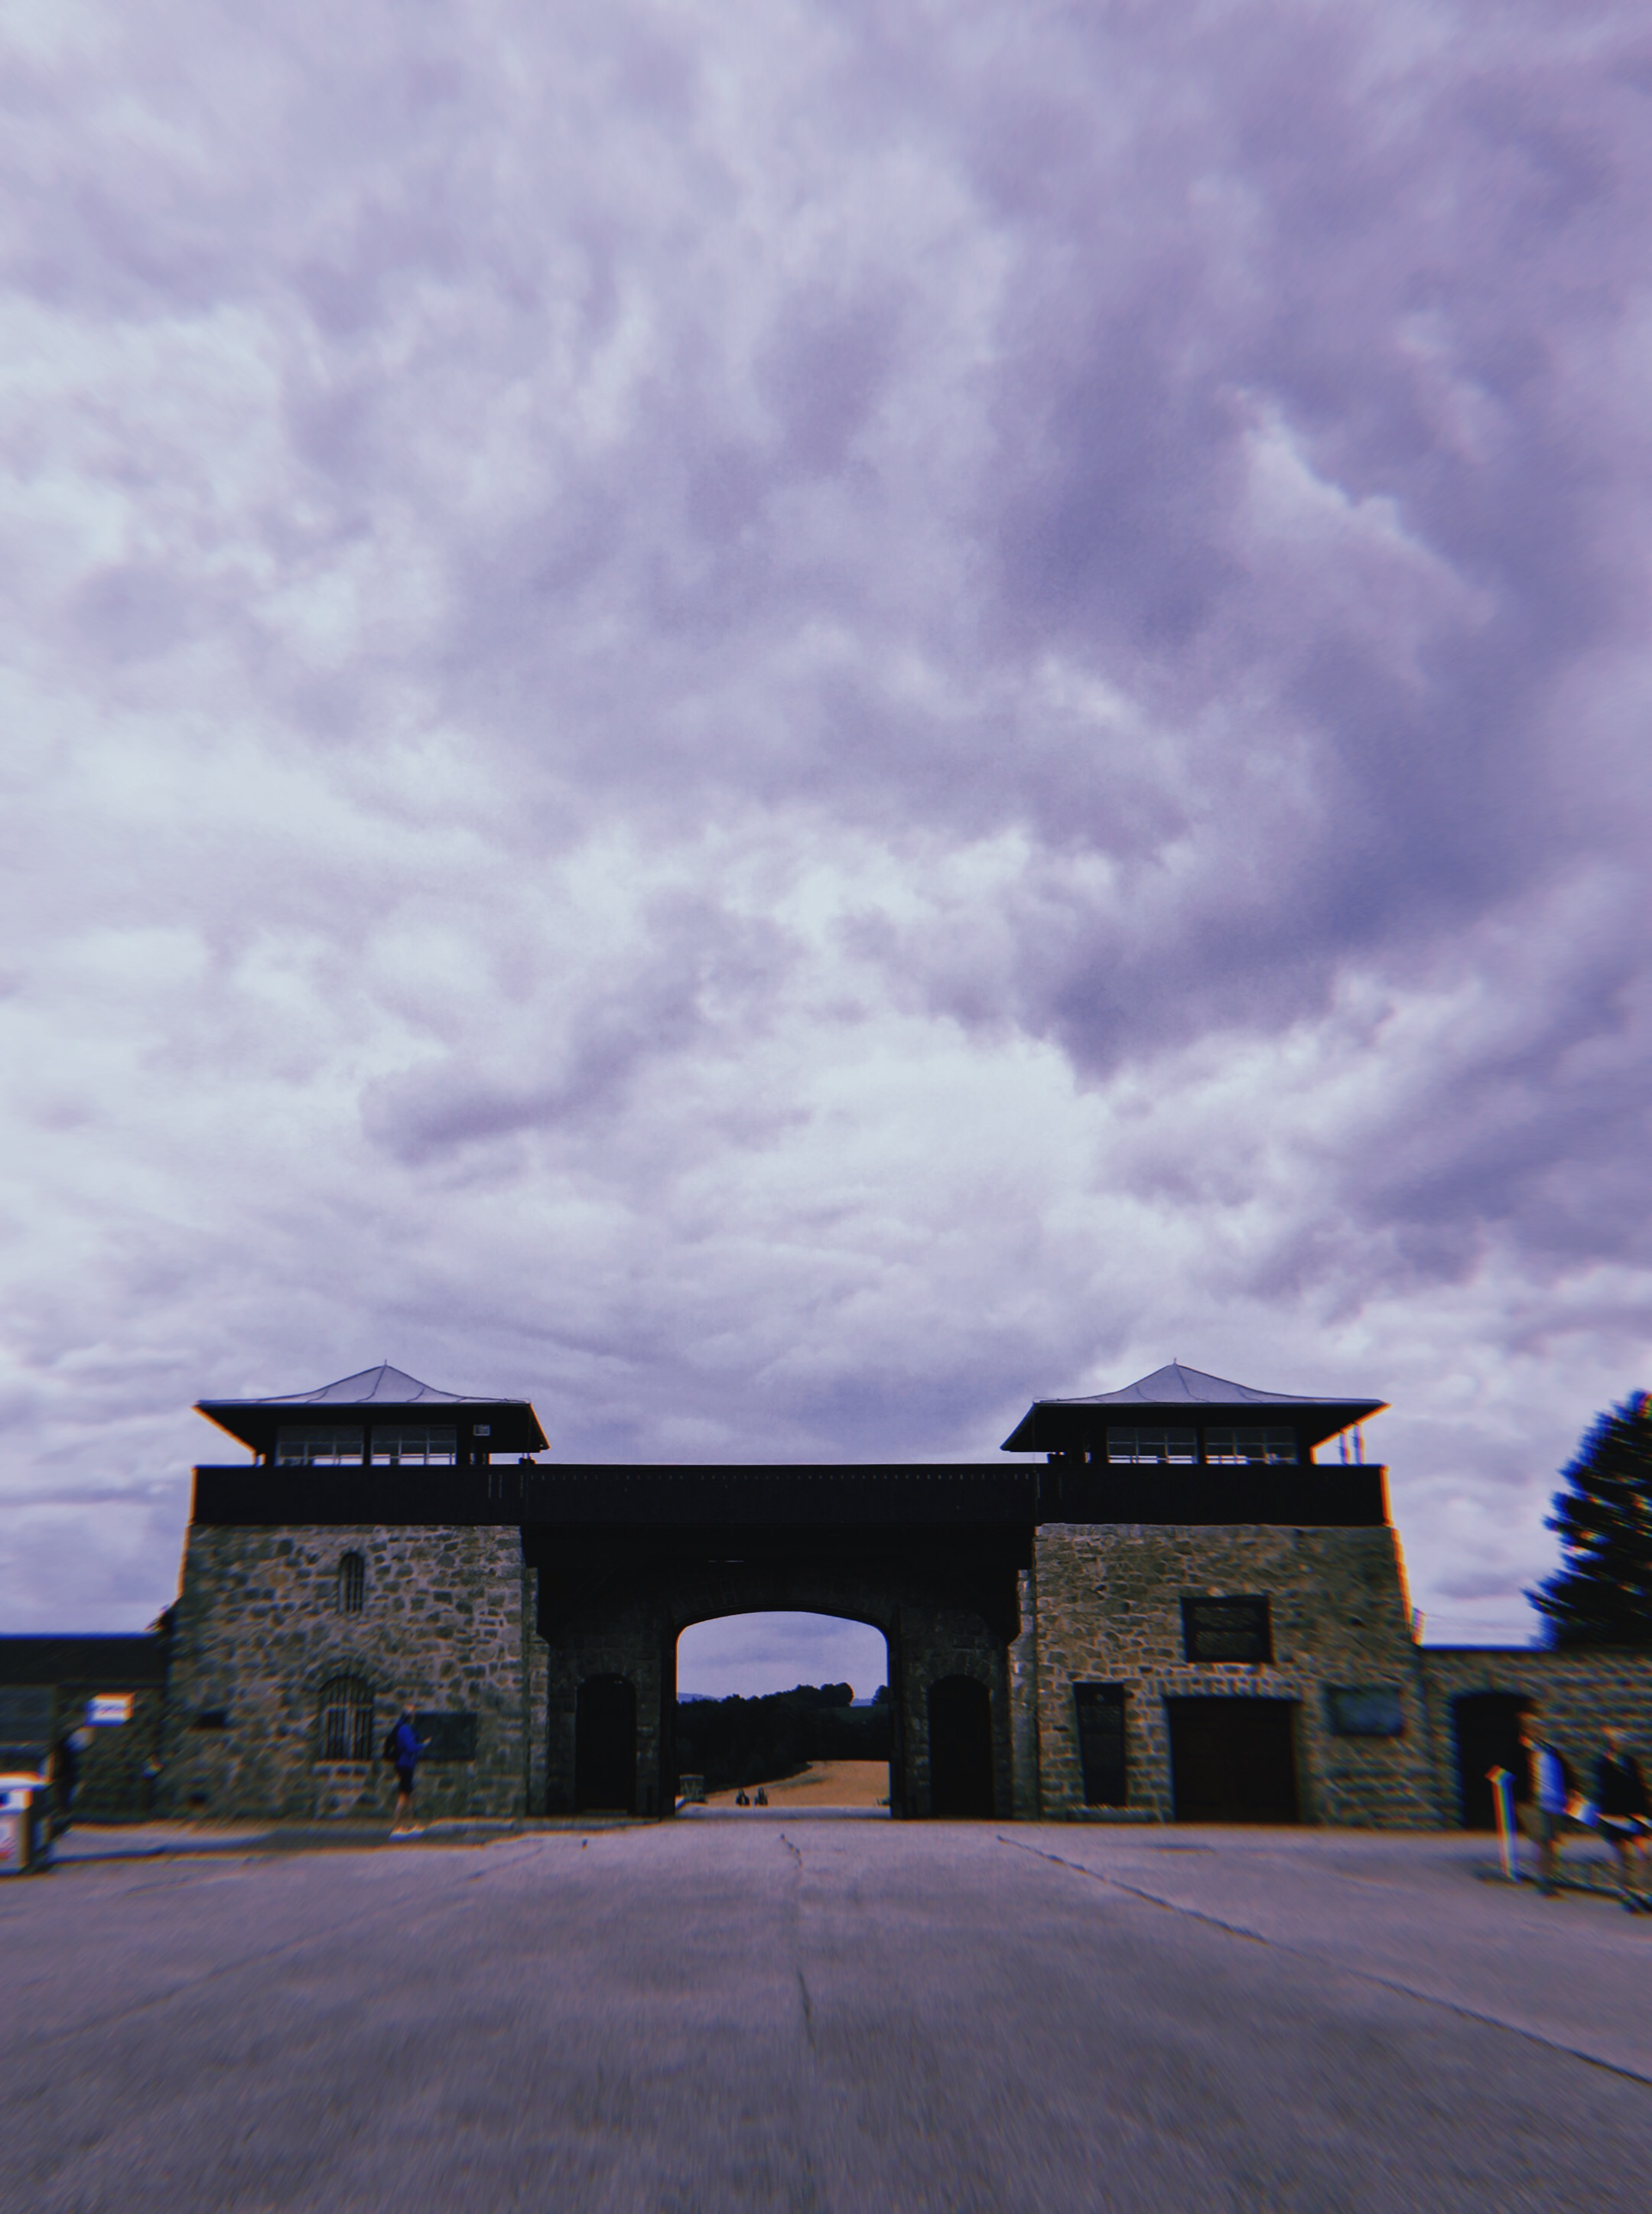 The foreboding and grim main entry gate into the Mauthausen camp.